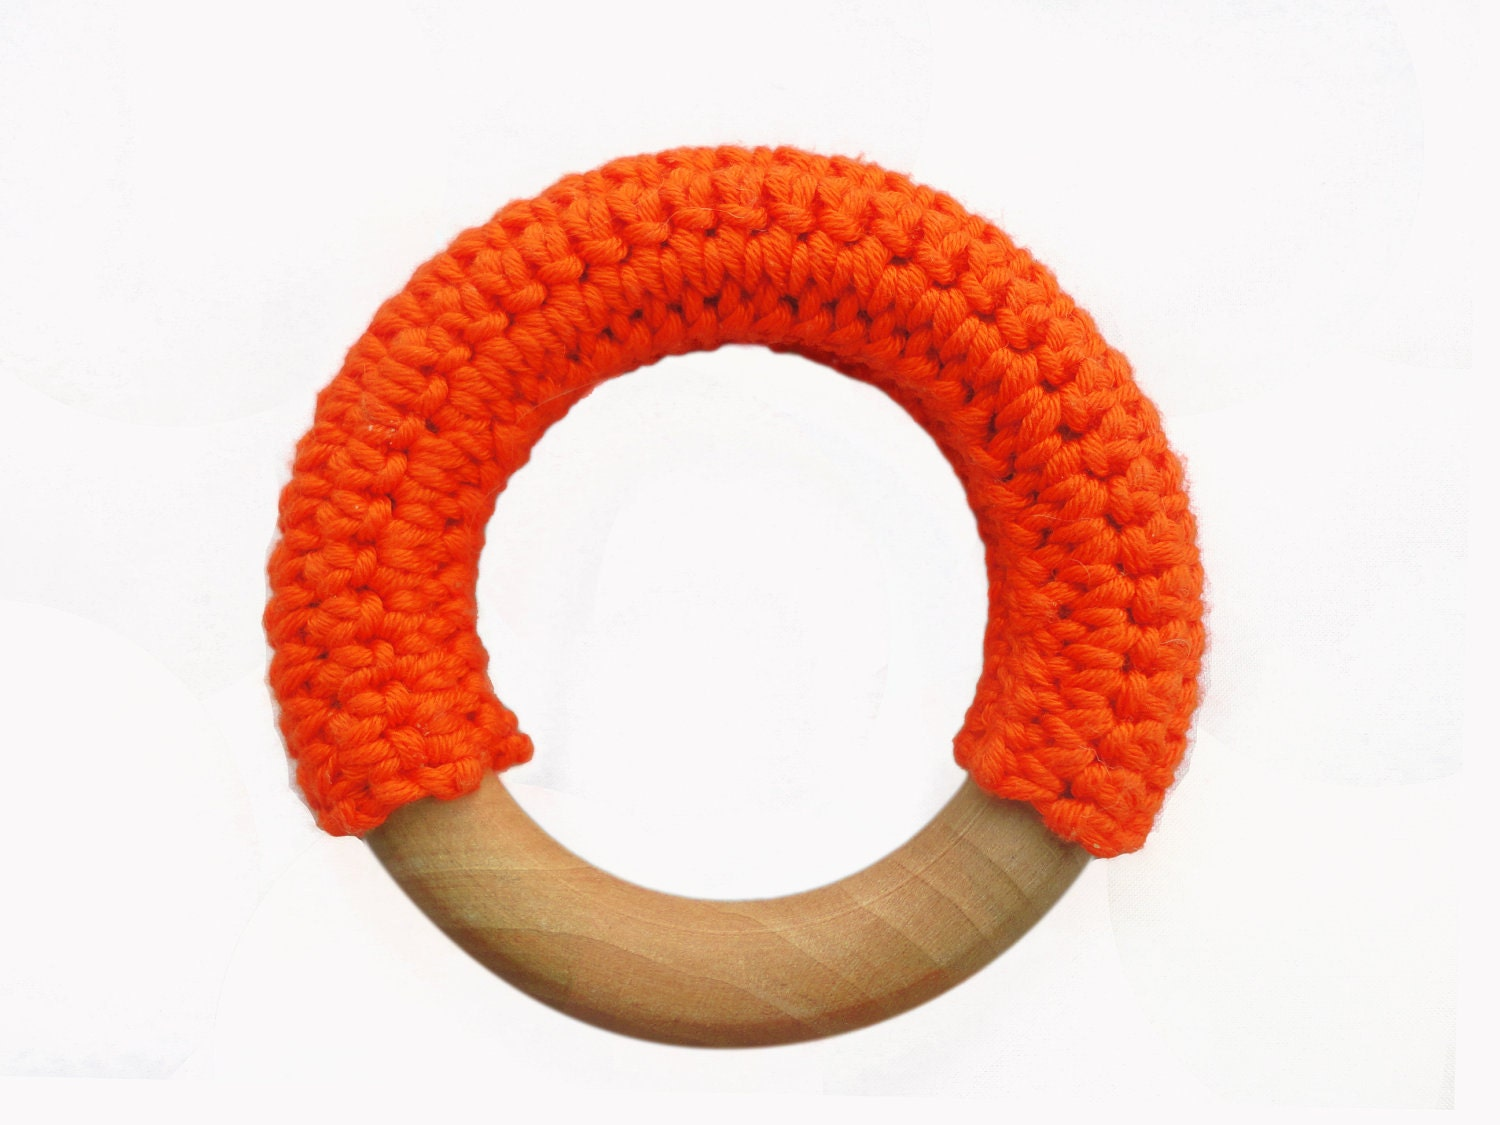 Crochet covered natural wooden baby teething ring  teether (Tangerine)